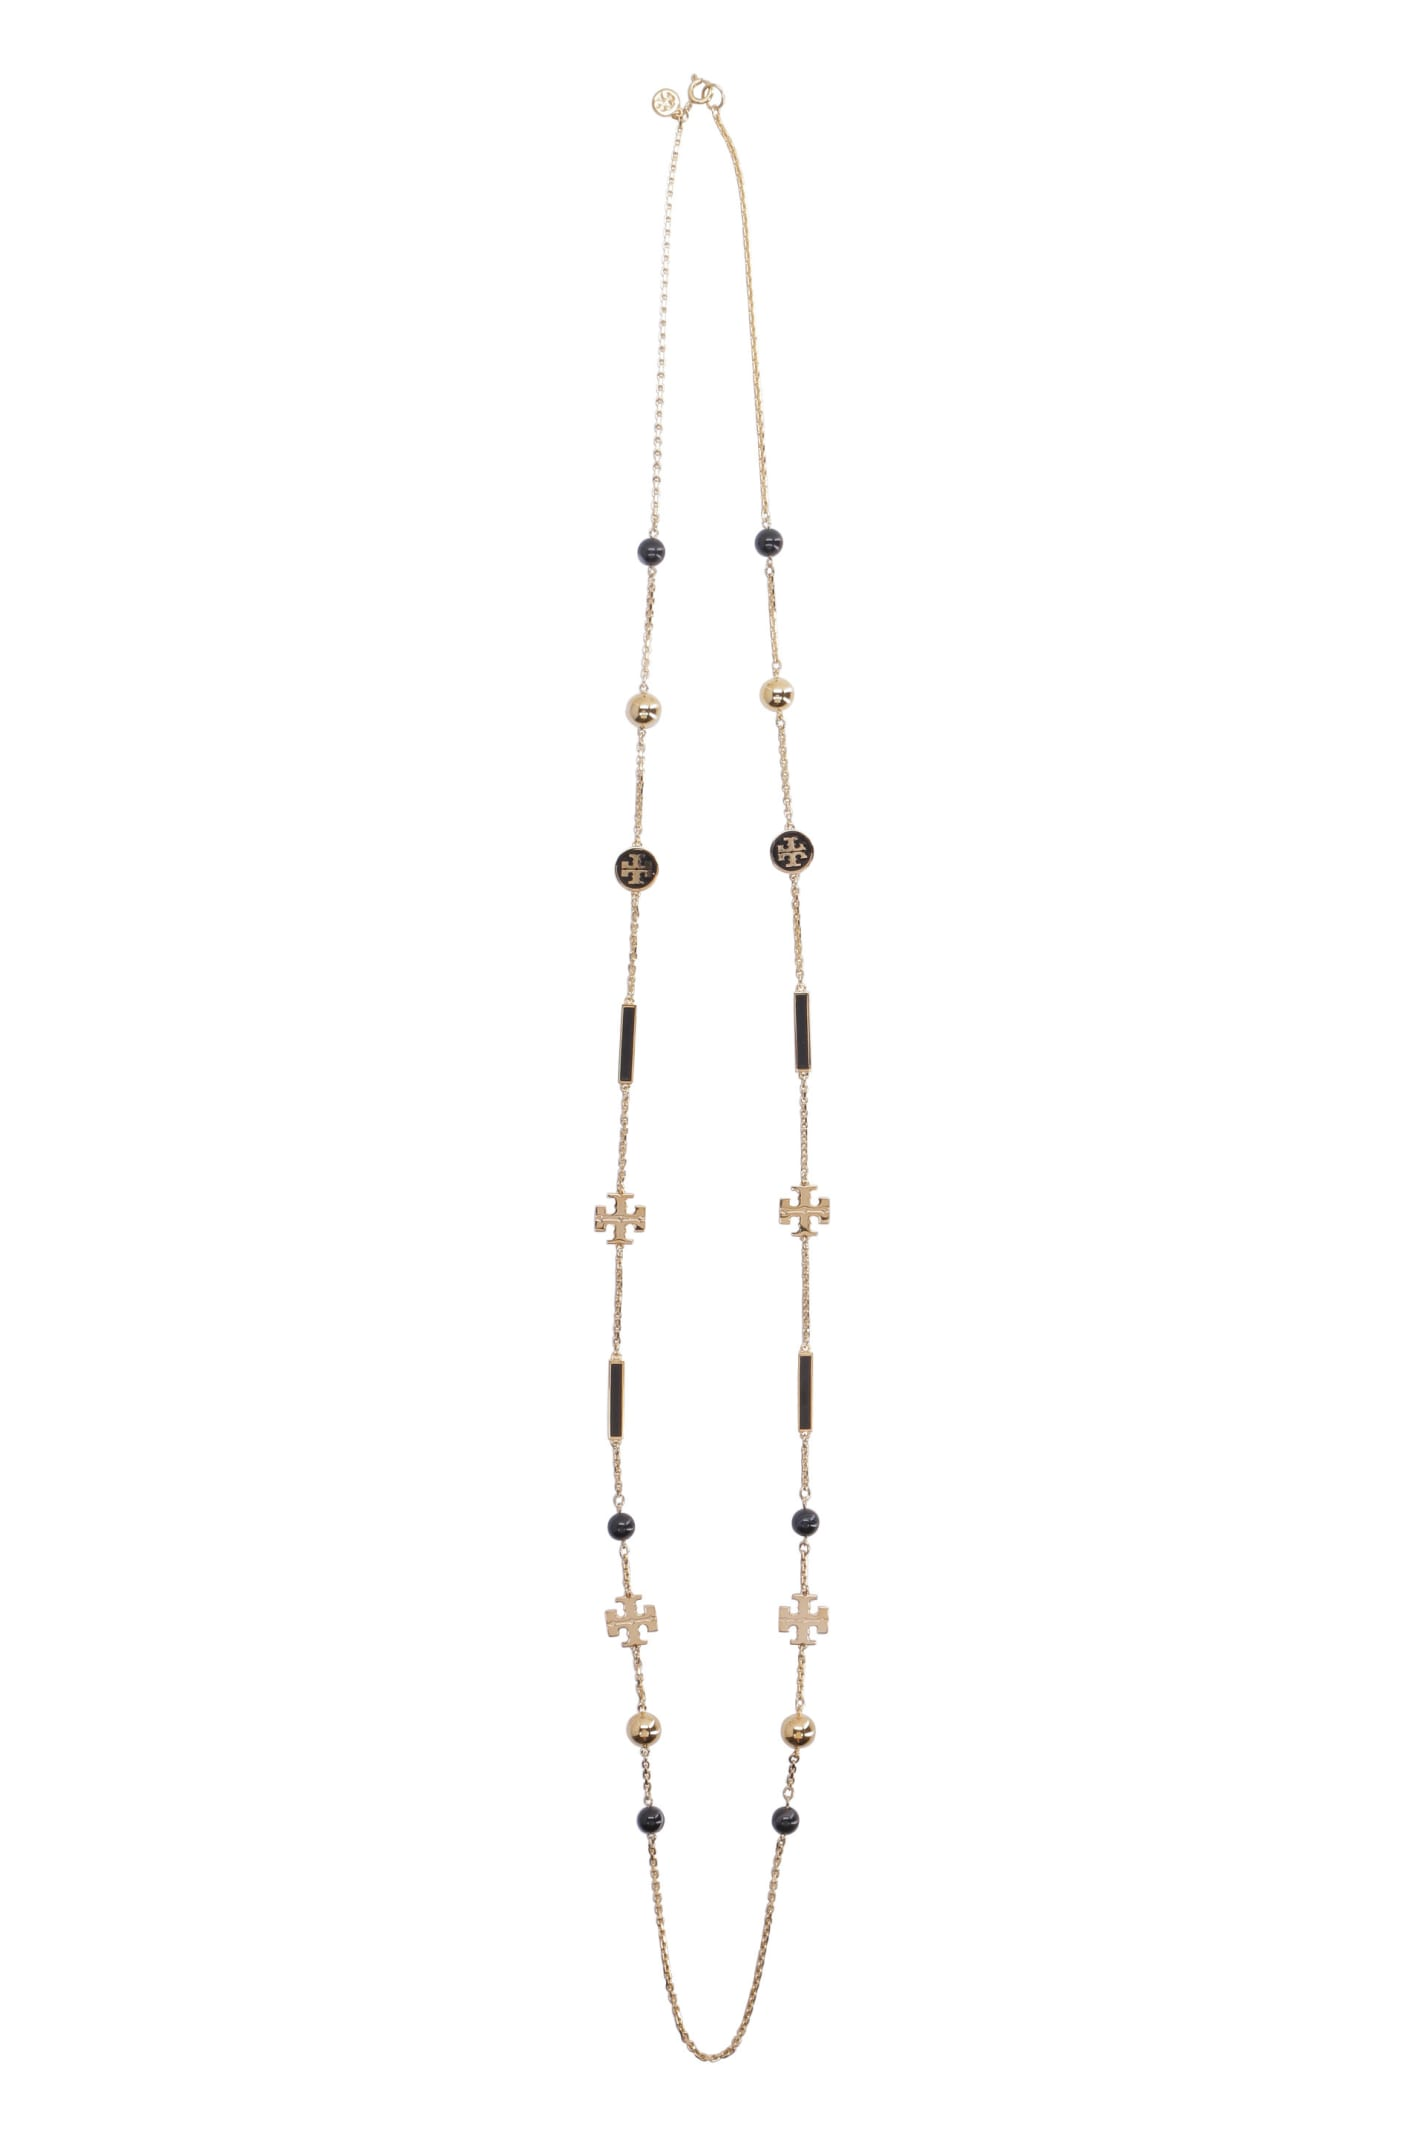 Tory Burch Kira Rosary Long Necklace With Decorative Charms